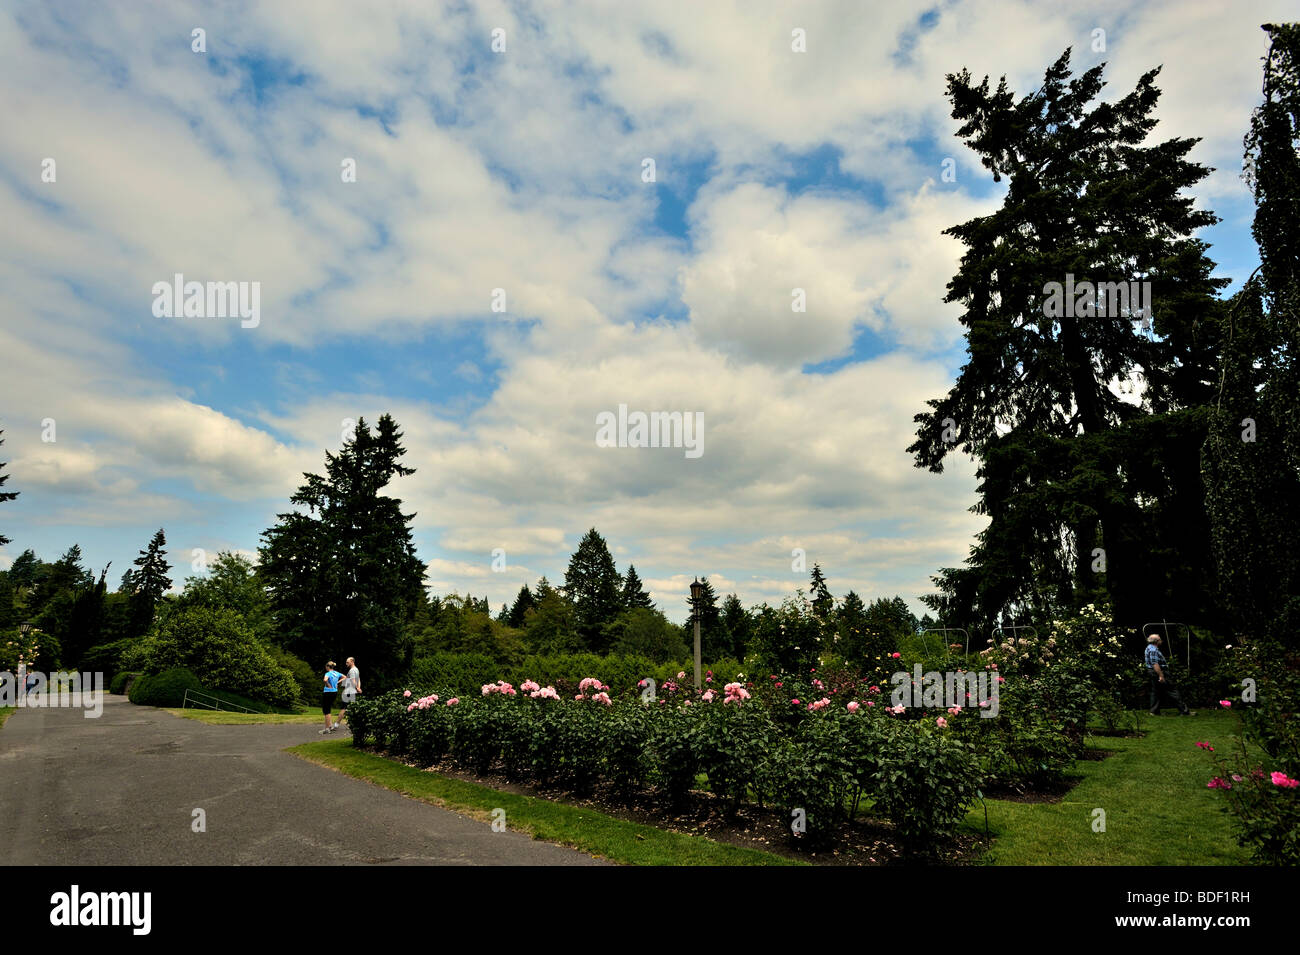 Rose Garden In Portland, Oregon, USA   Stock Image